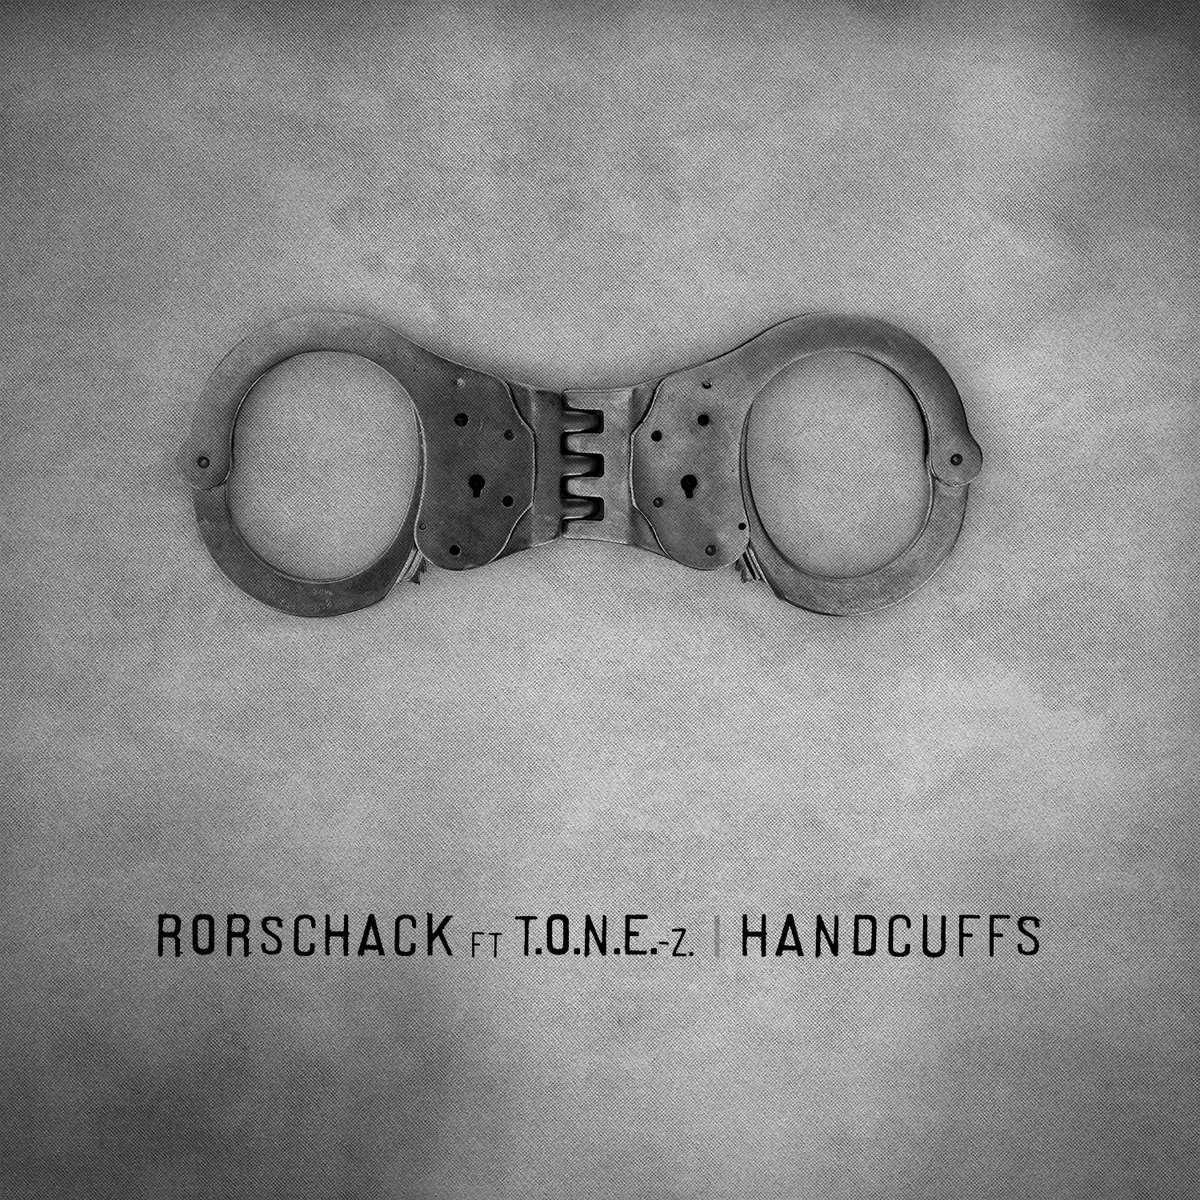 Rorschack feat. T.O.N.E.-z - Naked She Was @ 'Handcuffs' album (electronic, dubstep)